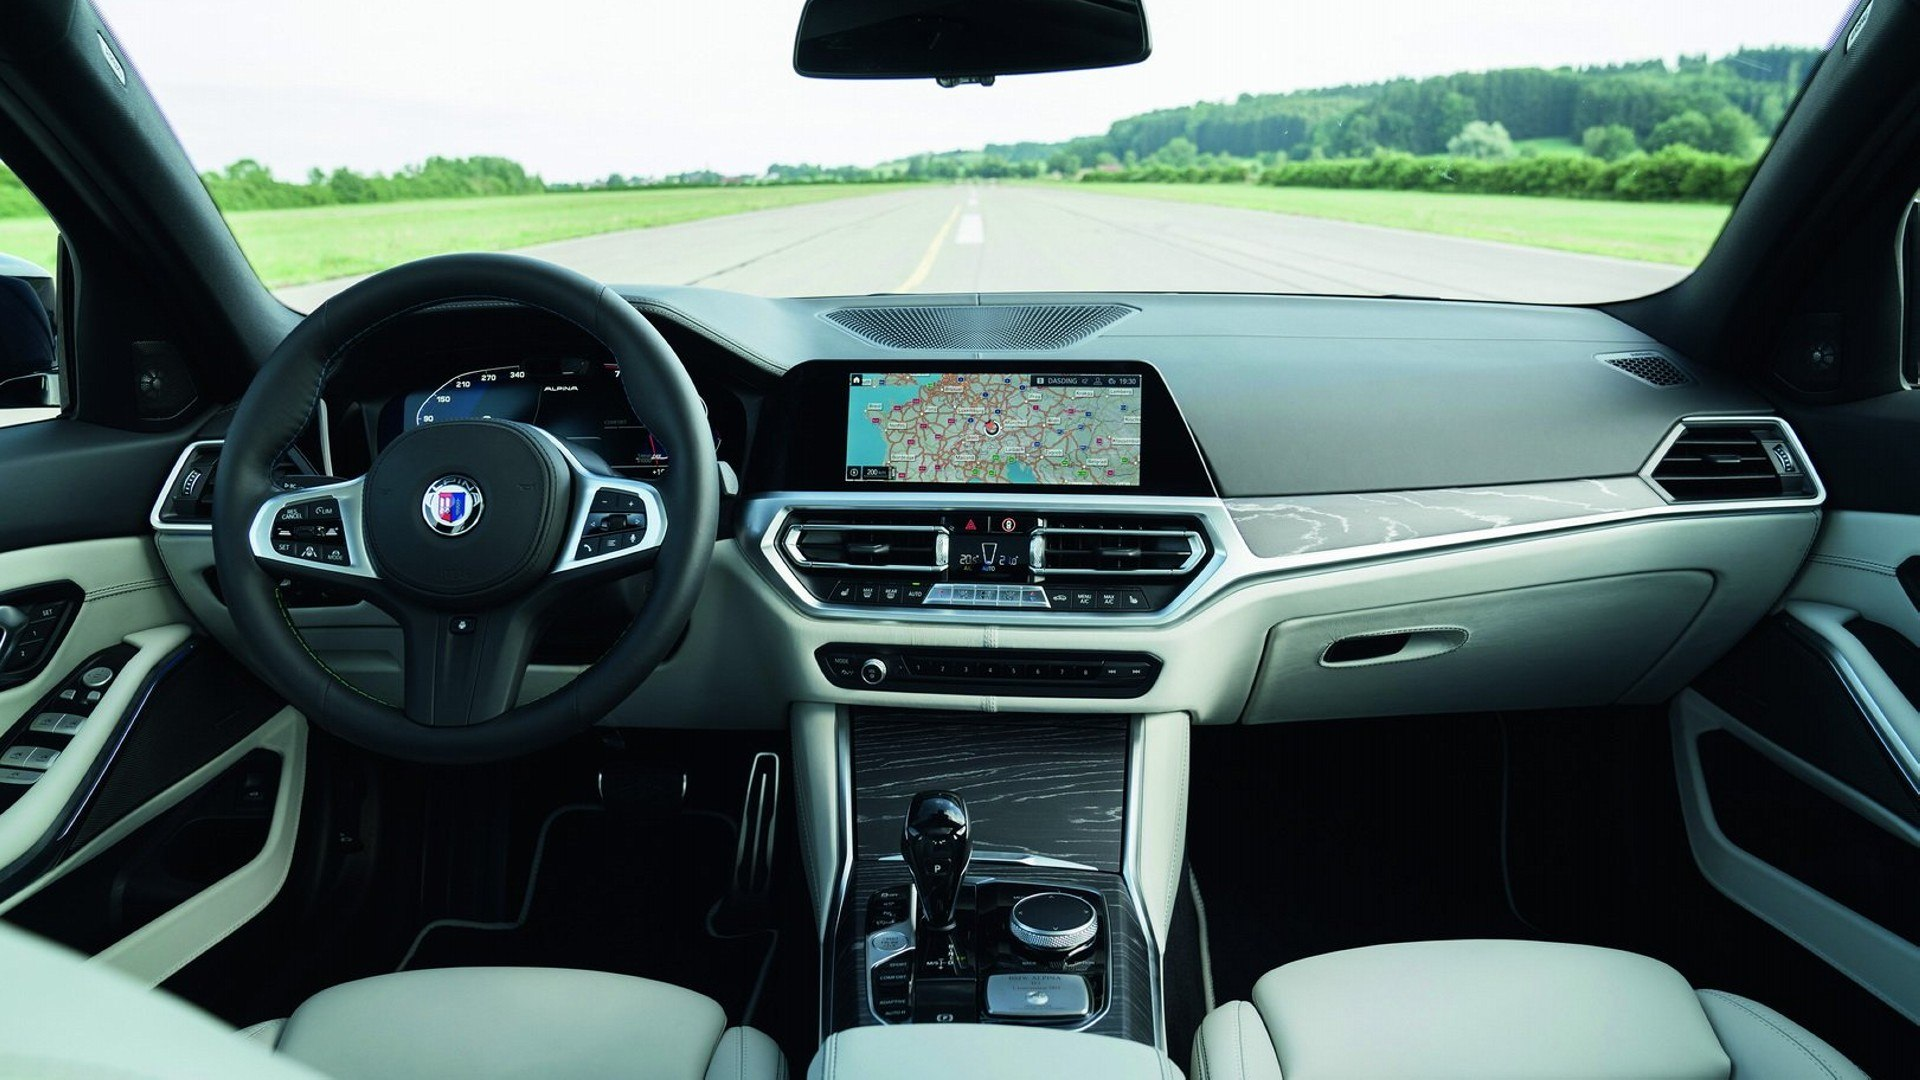 BMW Alpina B3 Interior (1)